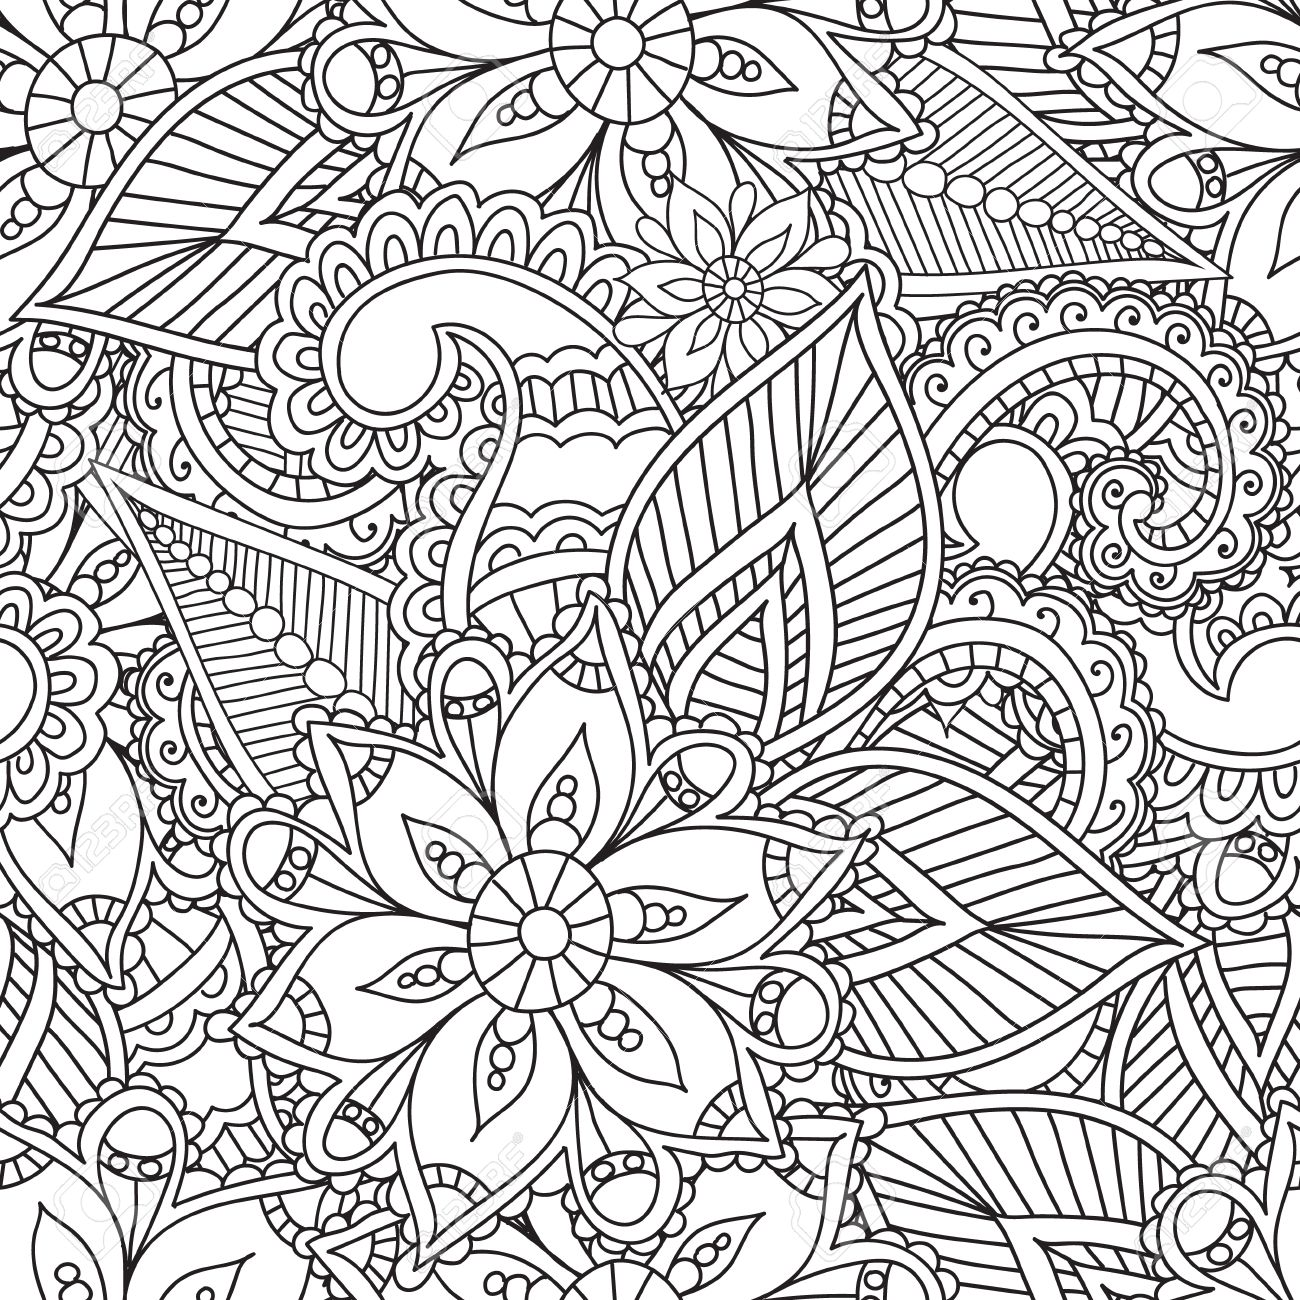 coloring pages for adults seamless patternhenna mehndi doodles abstract floral paisley design elements - Mehndi Coloring Pages